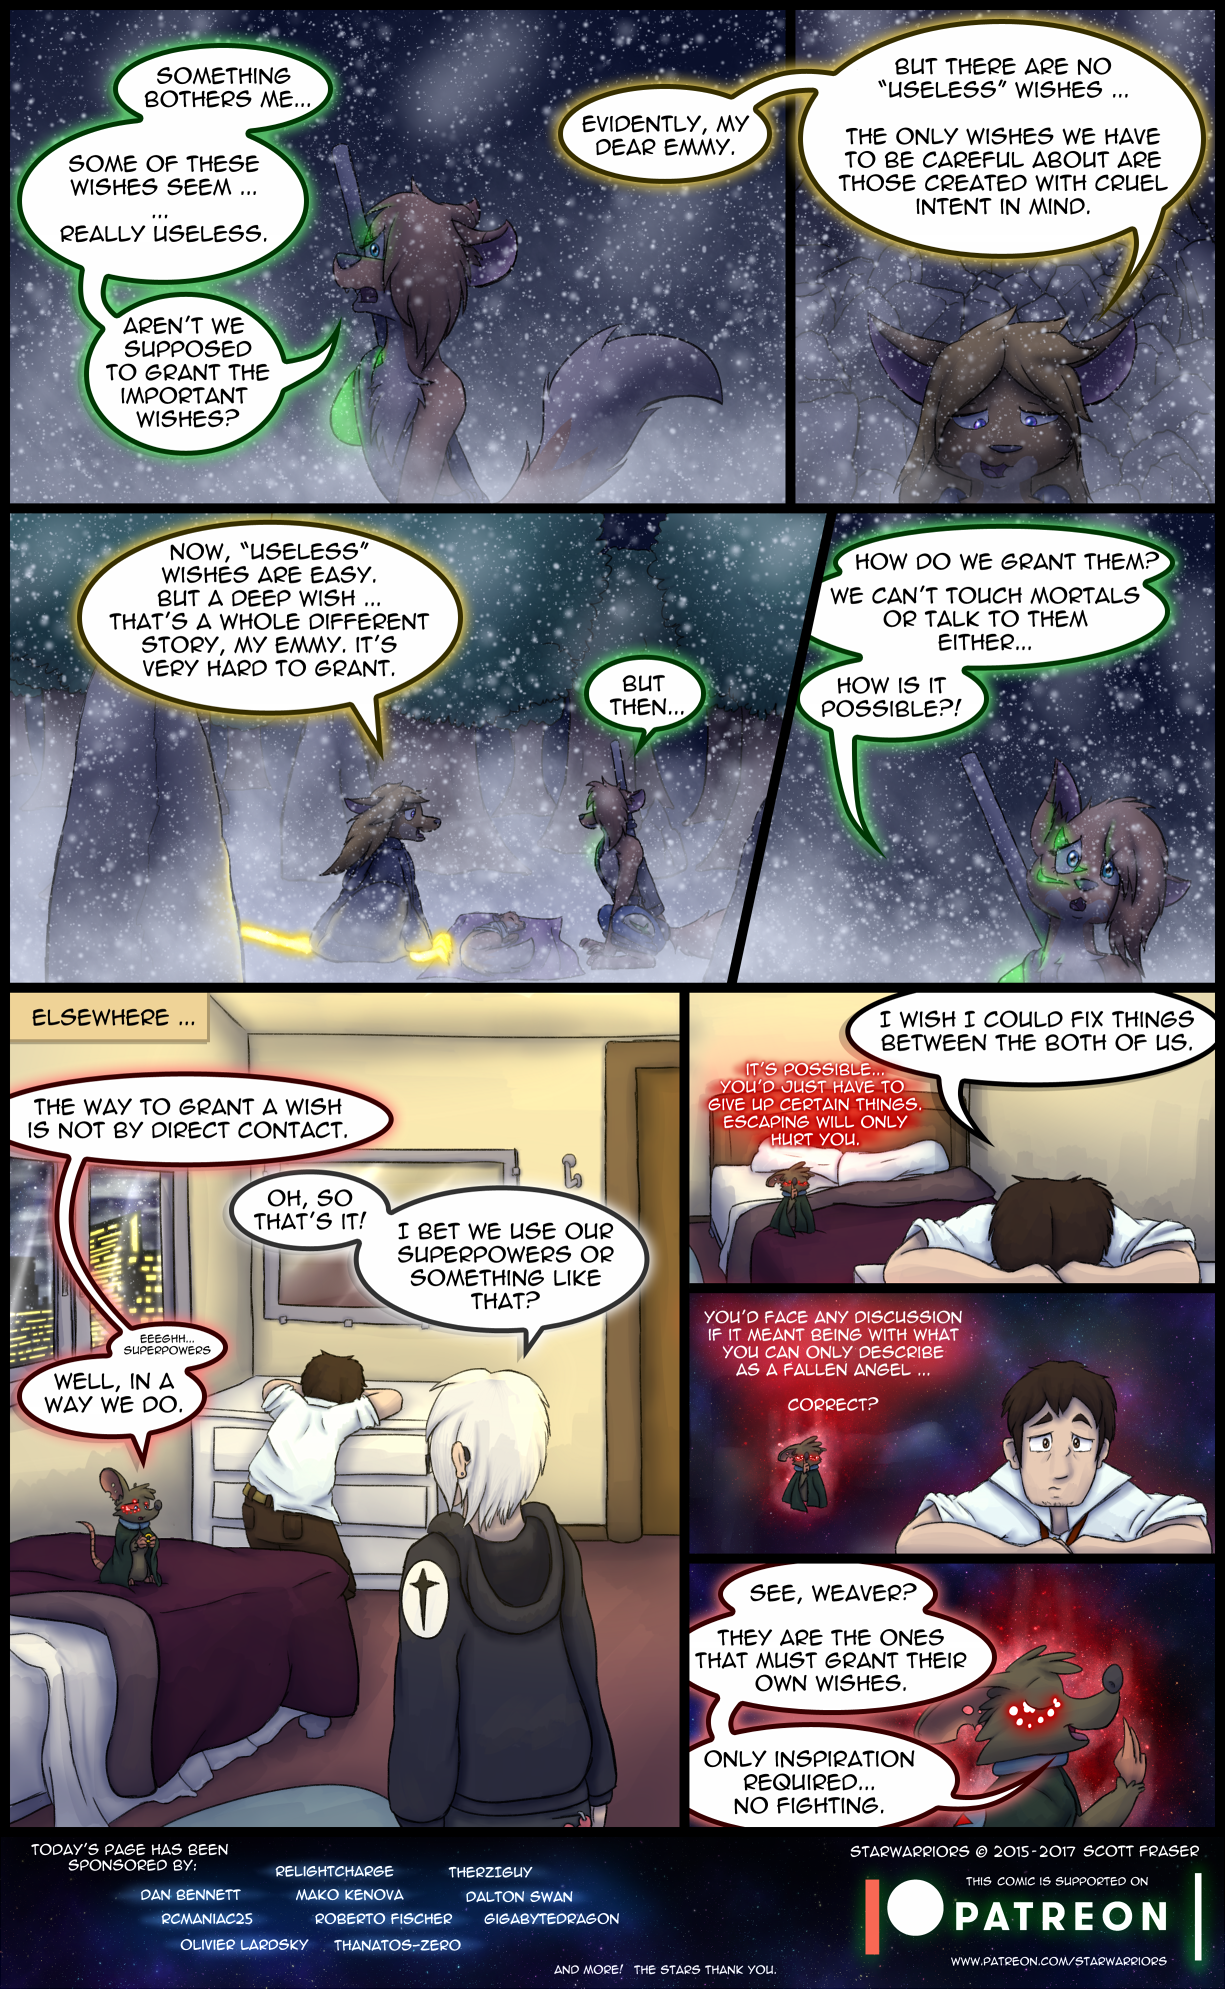 Ch3 Page 7 – Granting Wishes